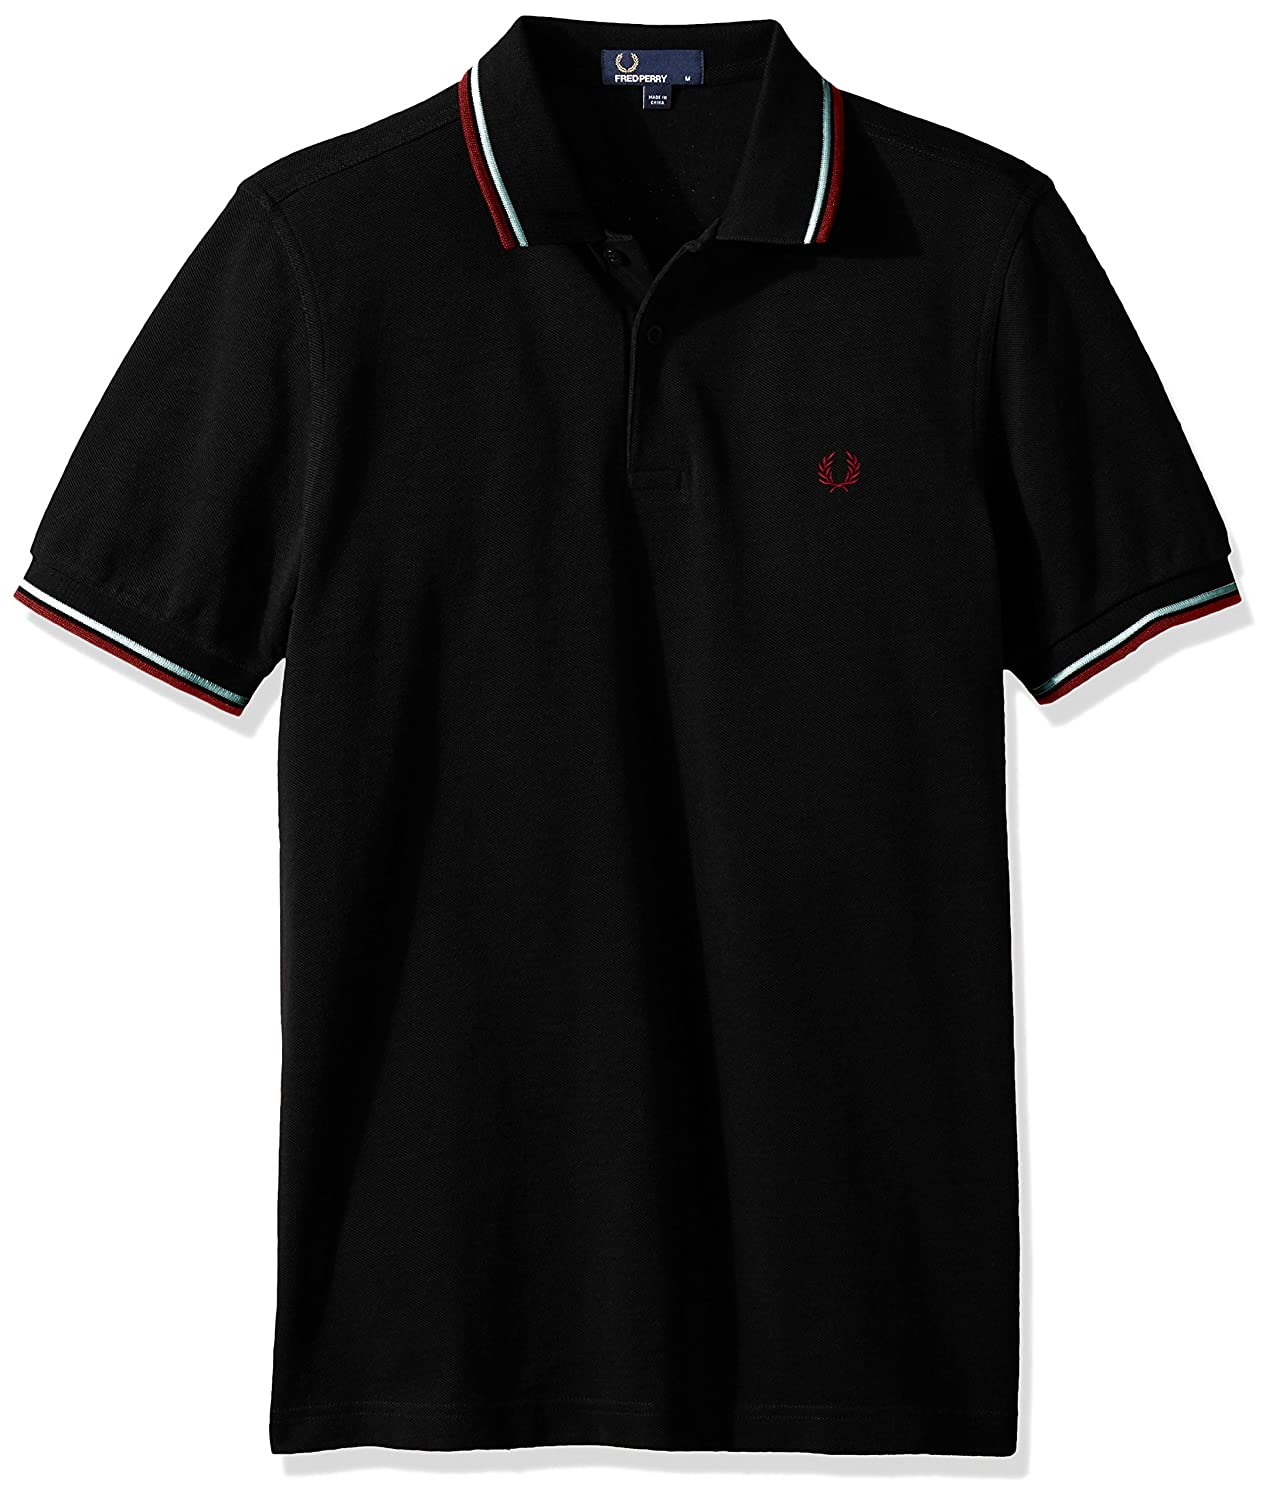 5170727ca41 Amazon.com: Fred Perry Men's Twin Tipped Shirt-M3600: Clothing